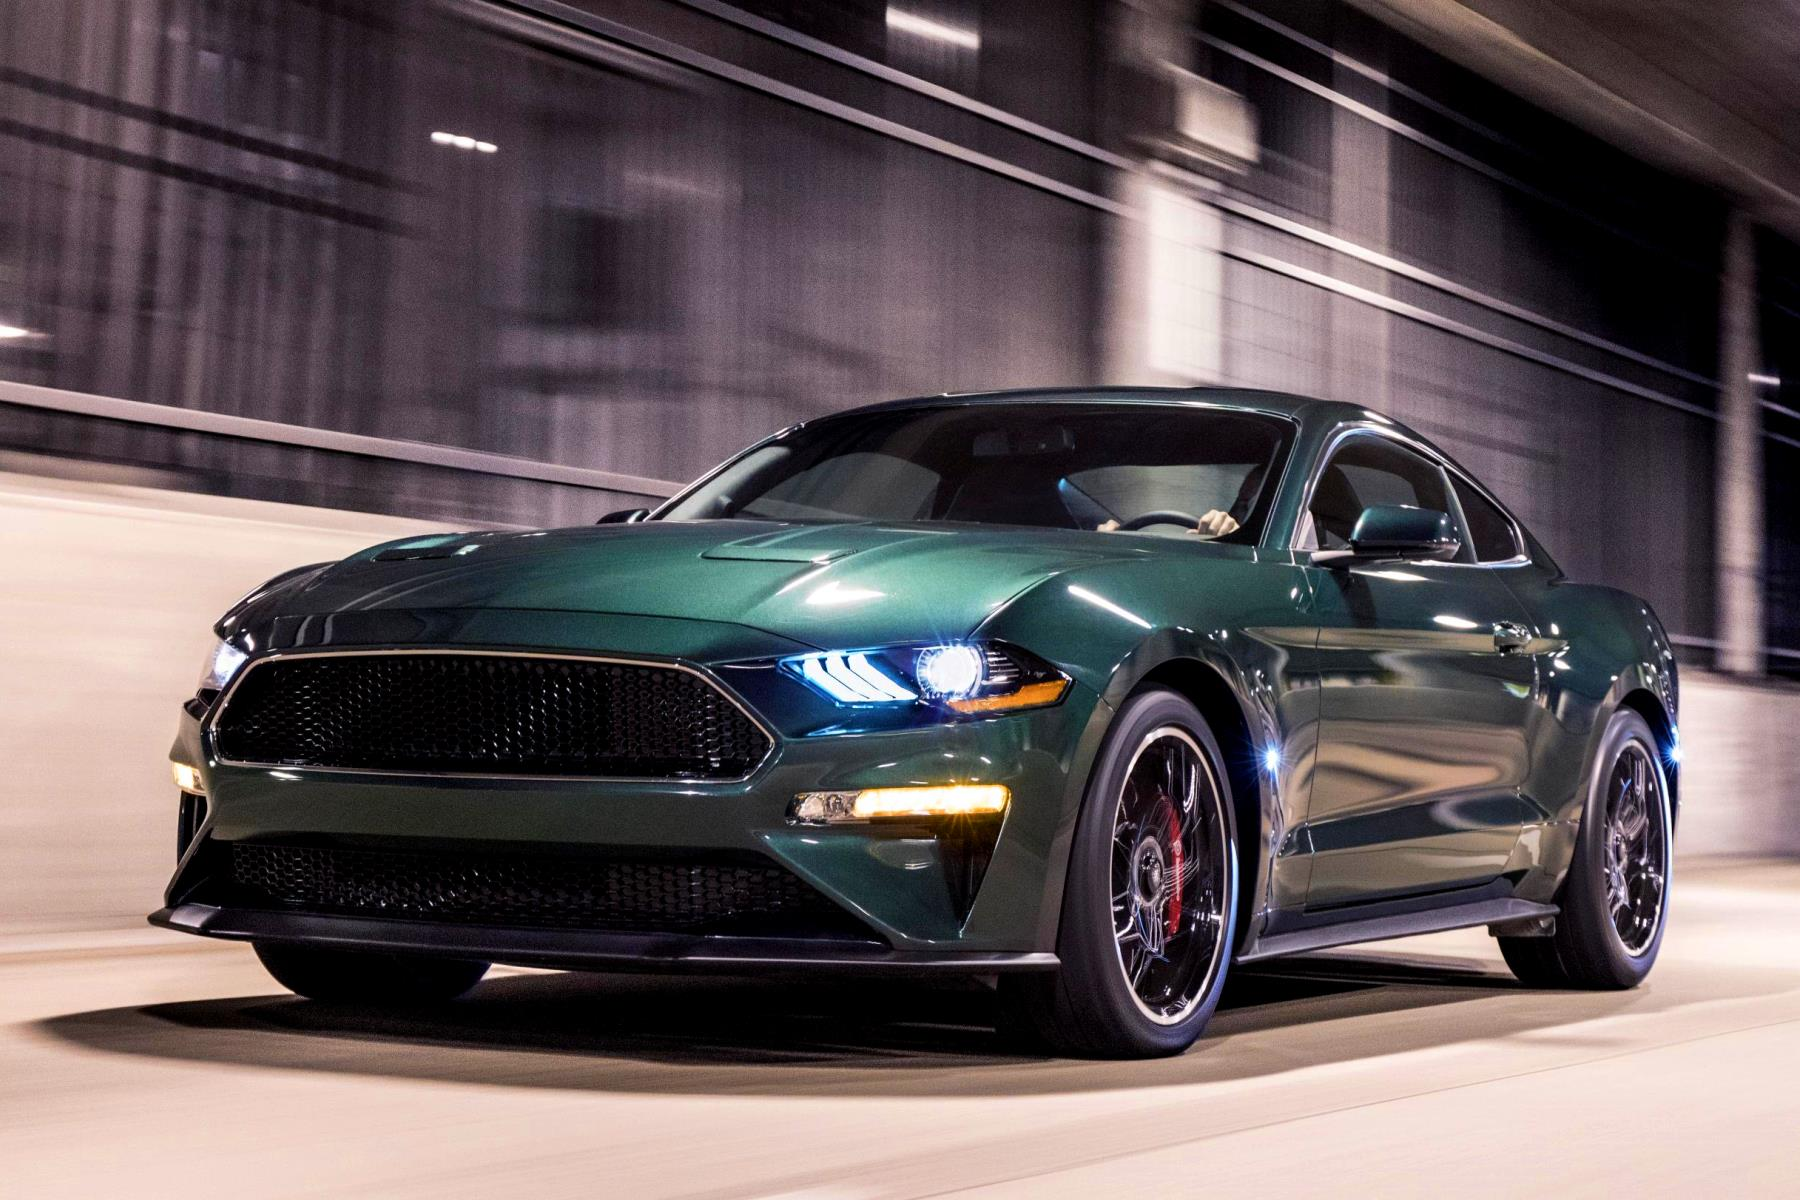 2018 Mustang Bullitt >> All-new Ford Mustang Bullitt unleashed – Automotive Blog